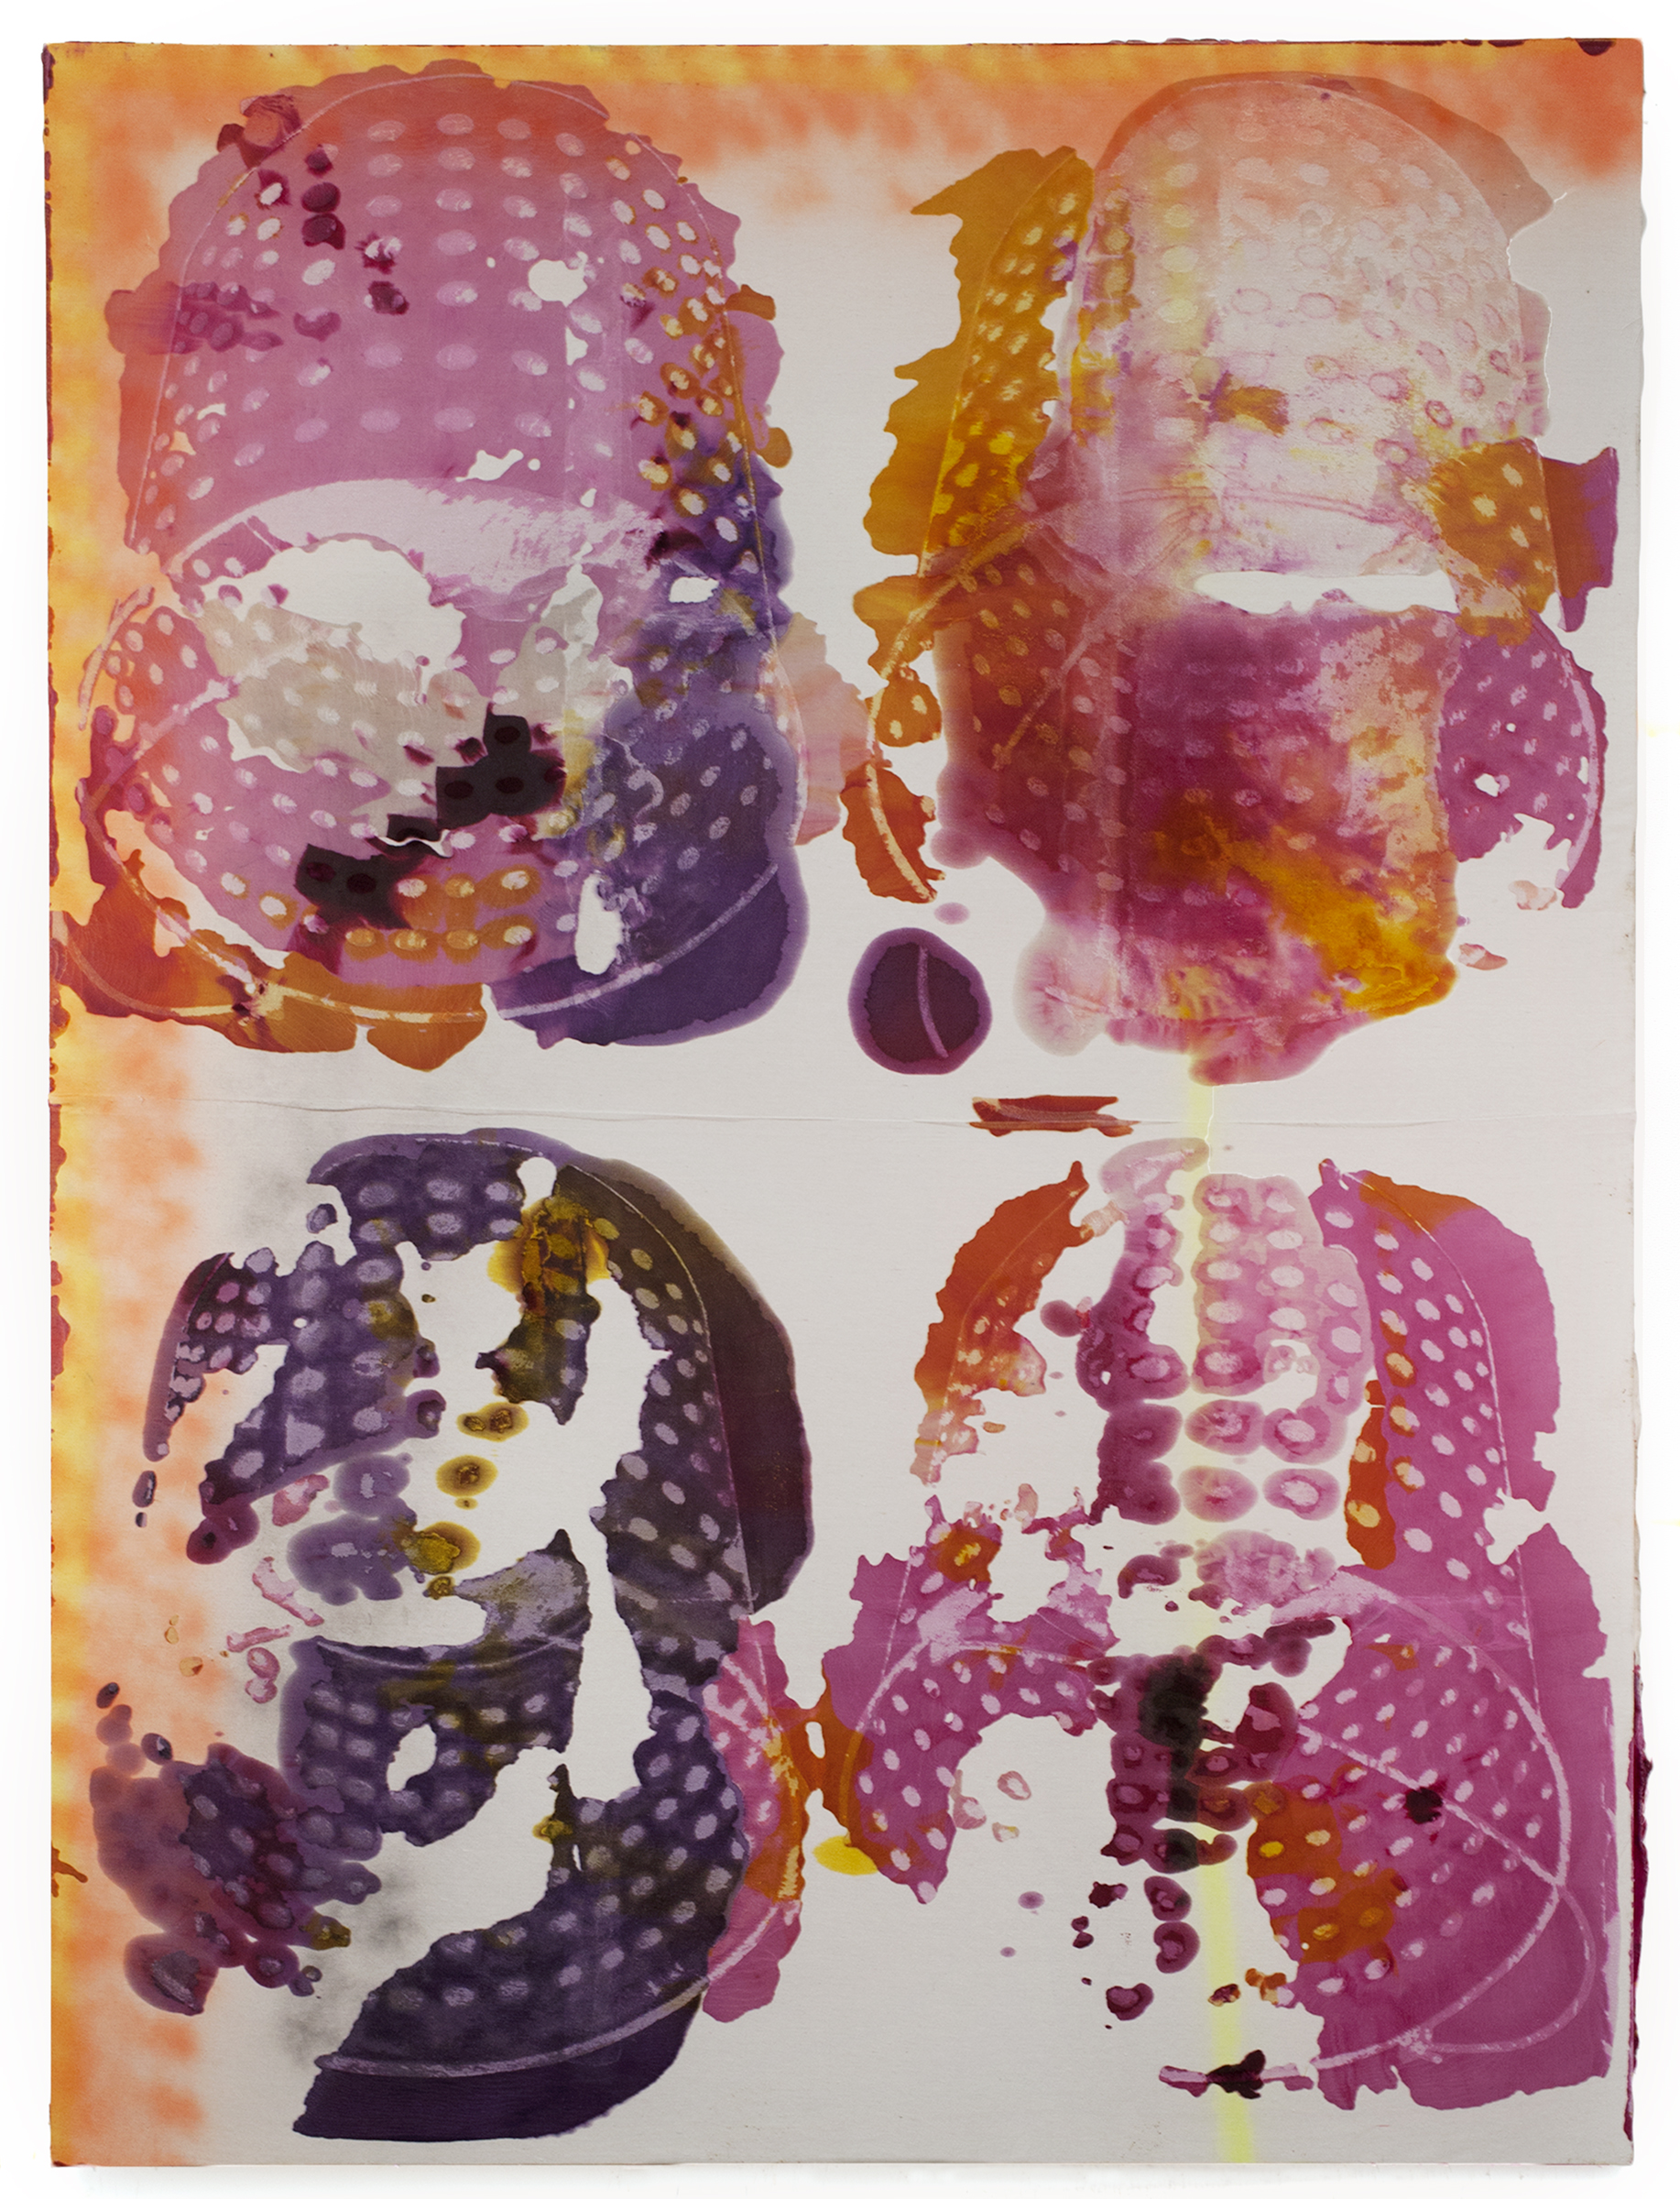 JPW3, Shadow Stamp 4, 2016, wax, dye, spray paint and Rust-Oleum on canvas, 96 x 72 in.